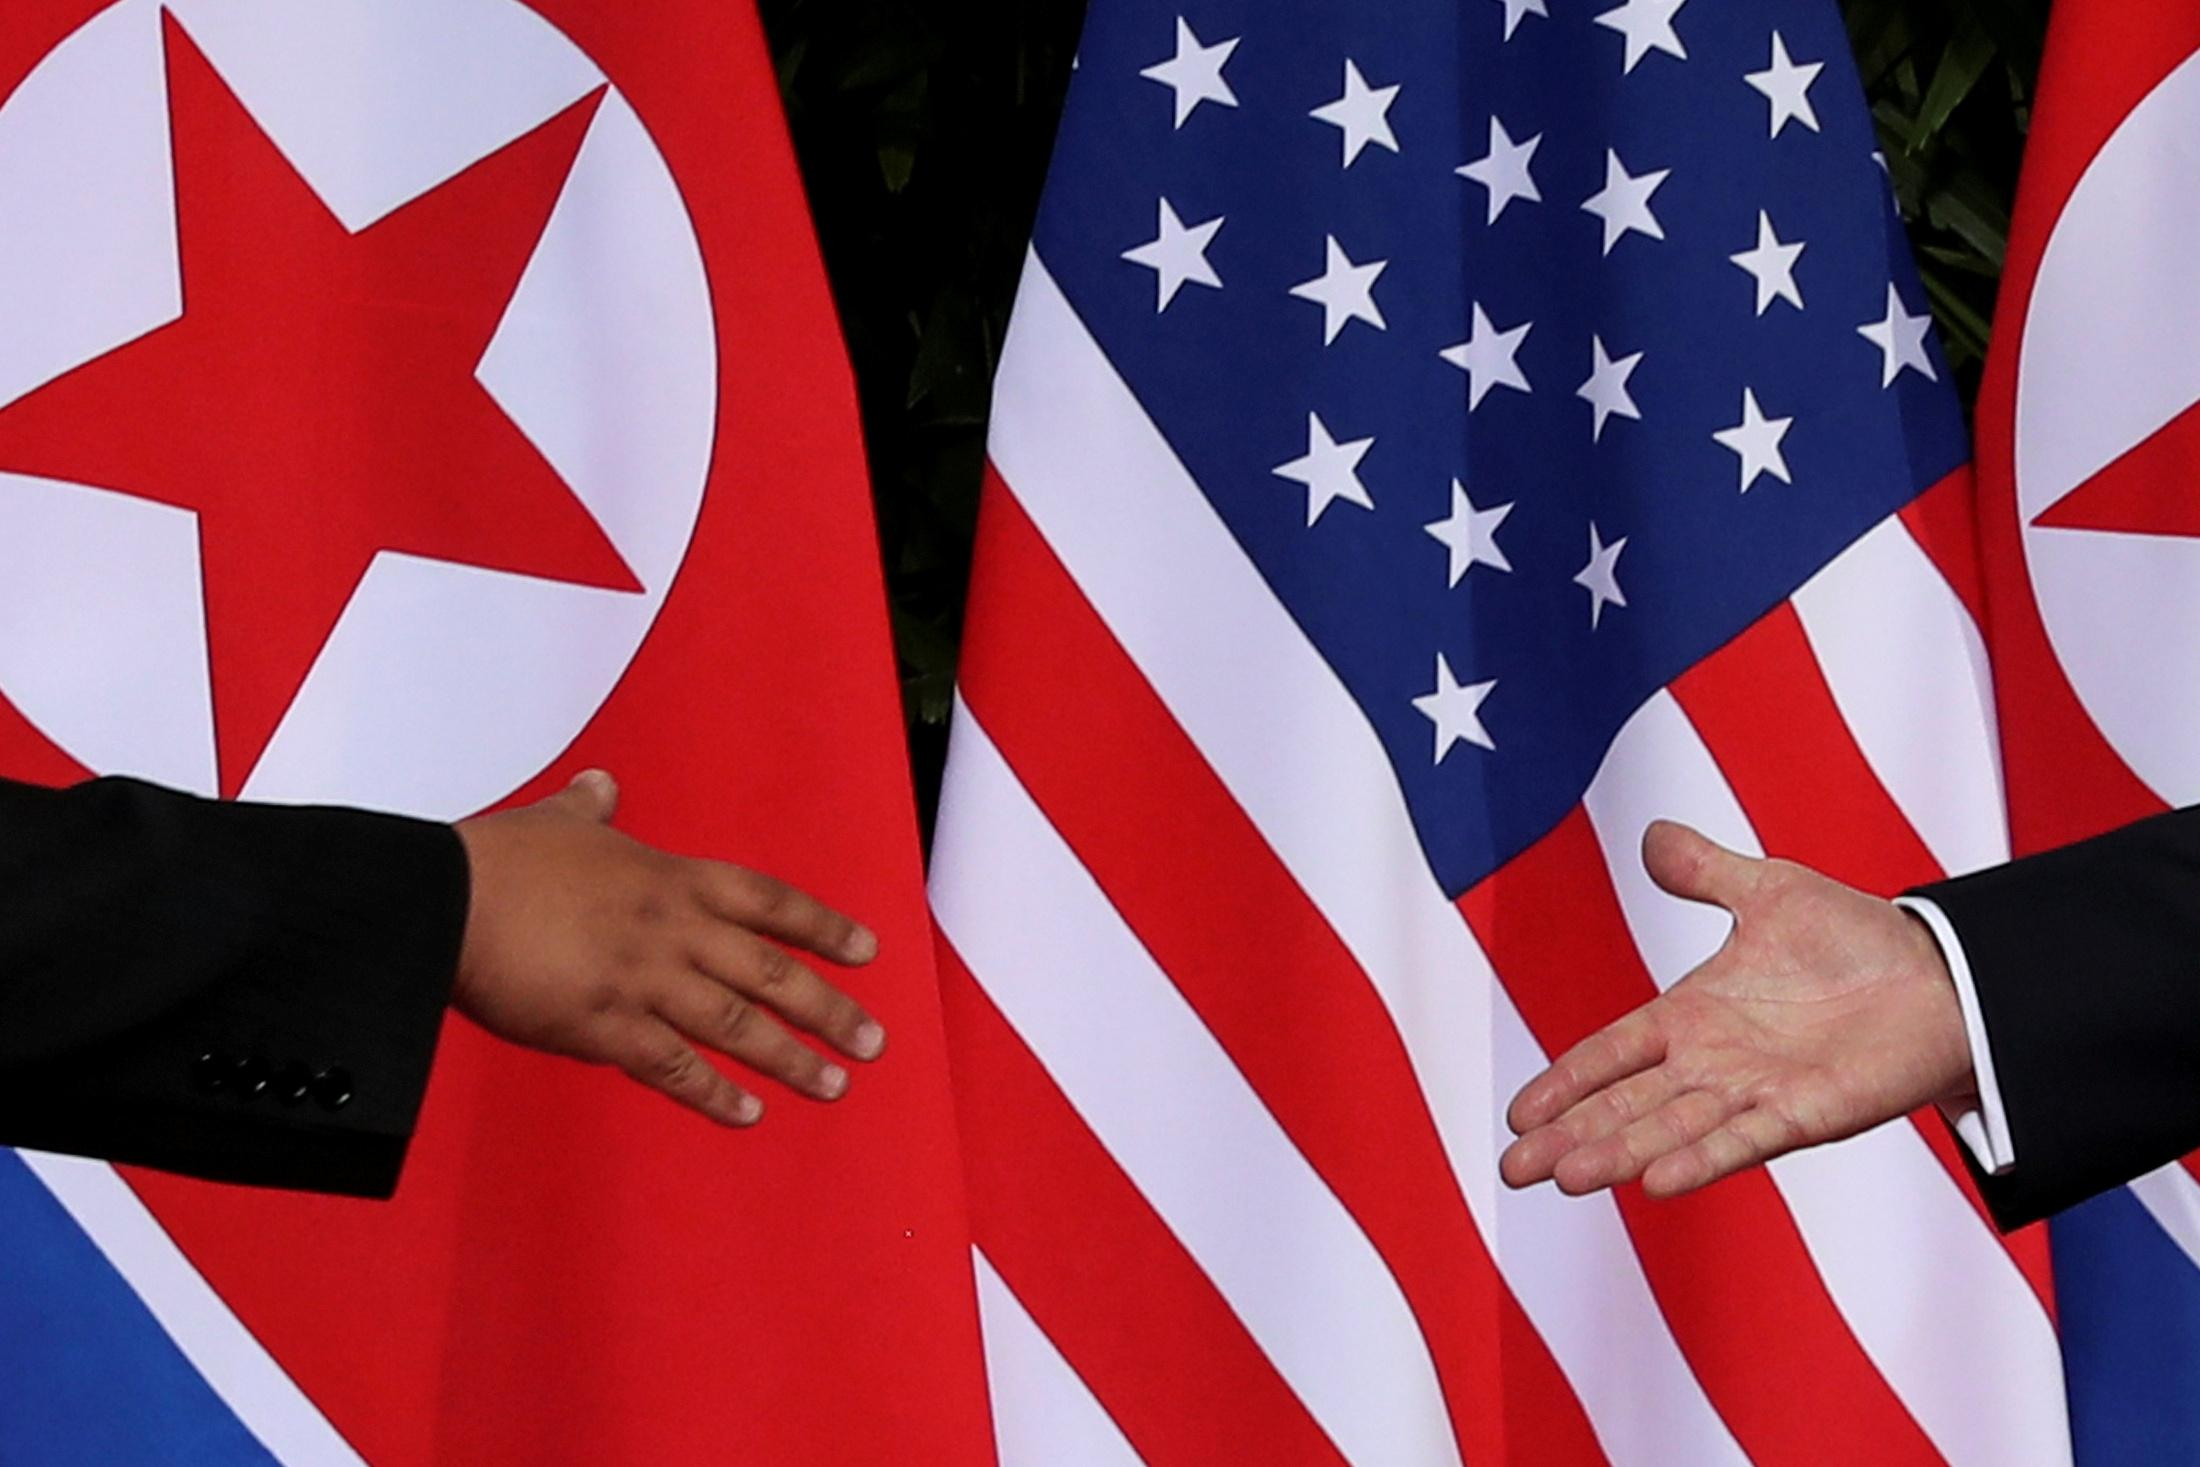 North Korea willing to resume talks with U.S. in late September: KCNA